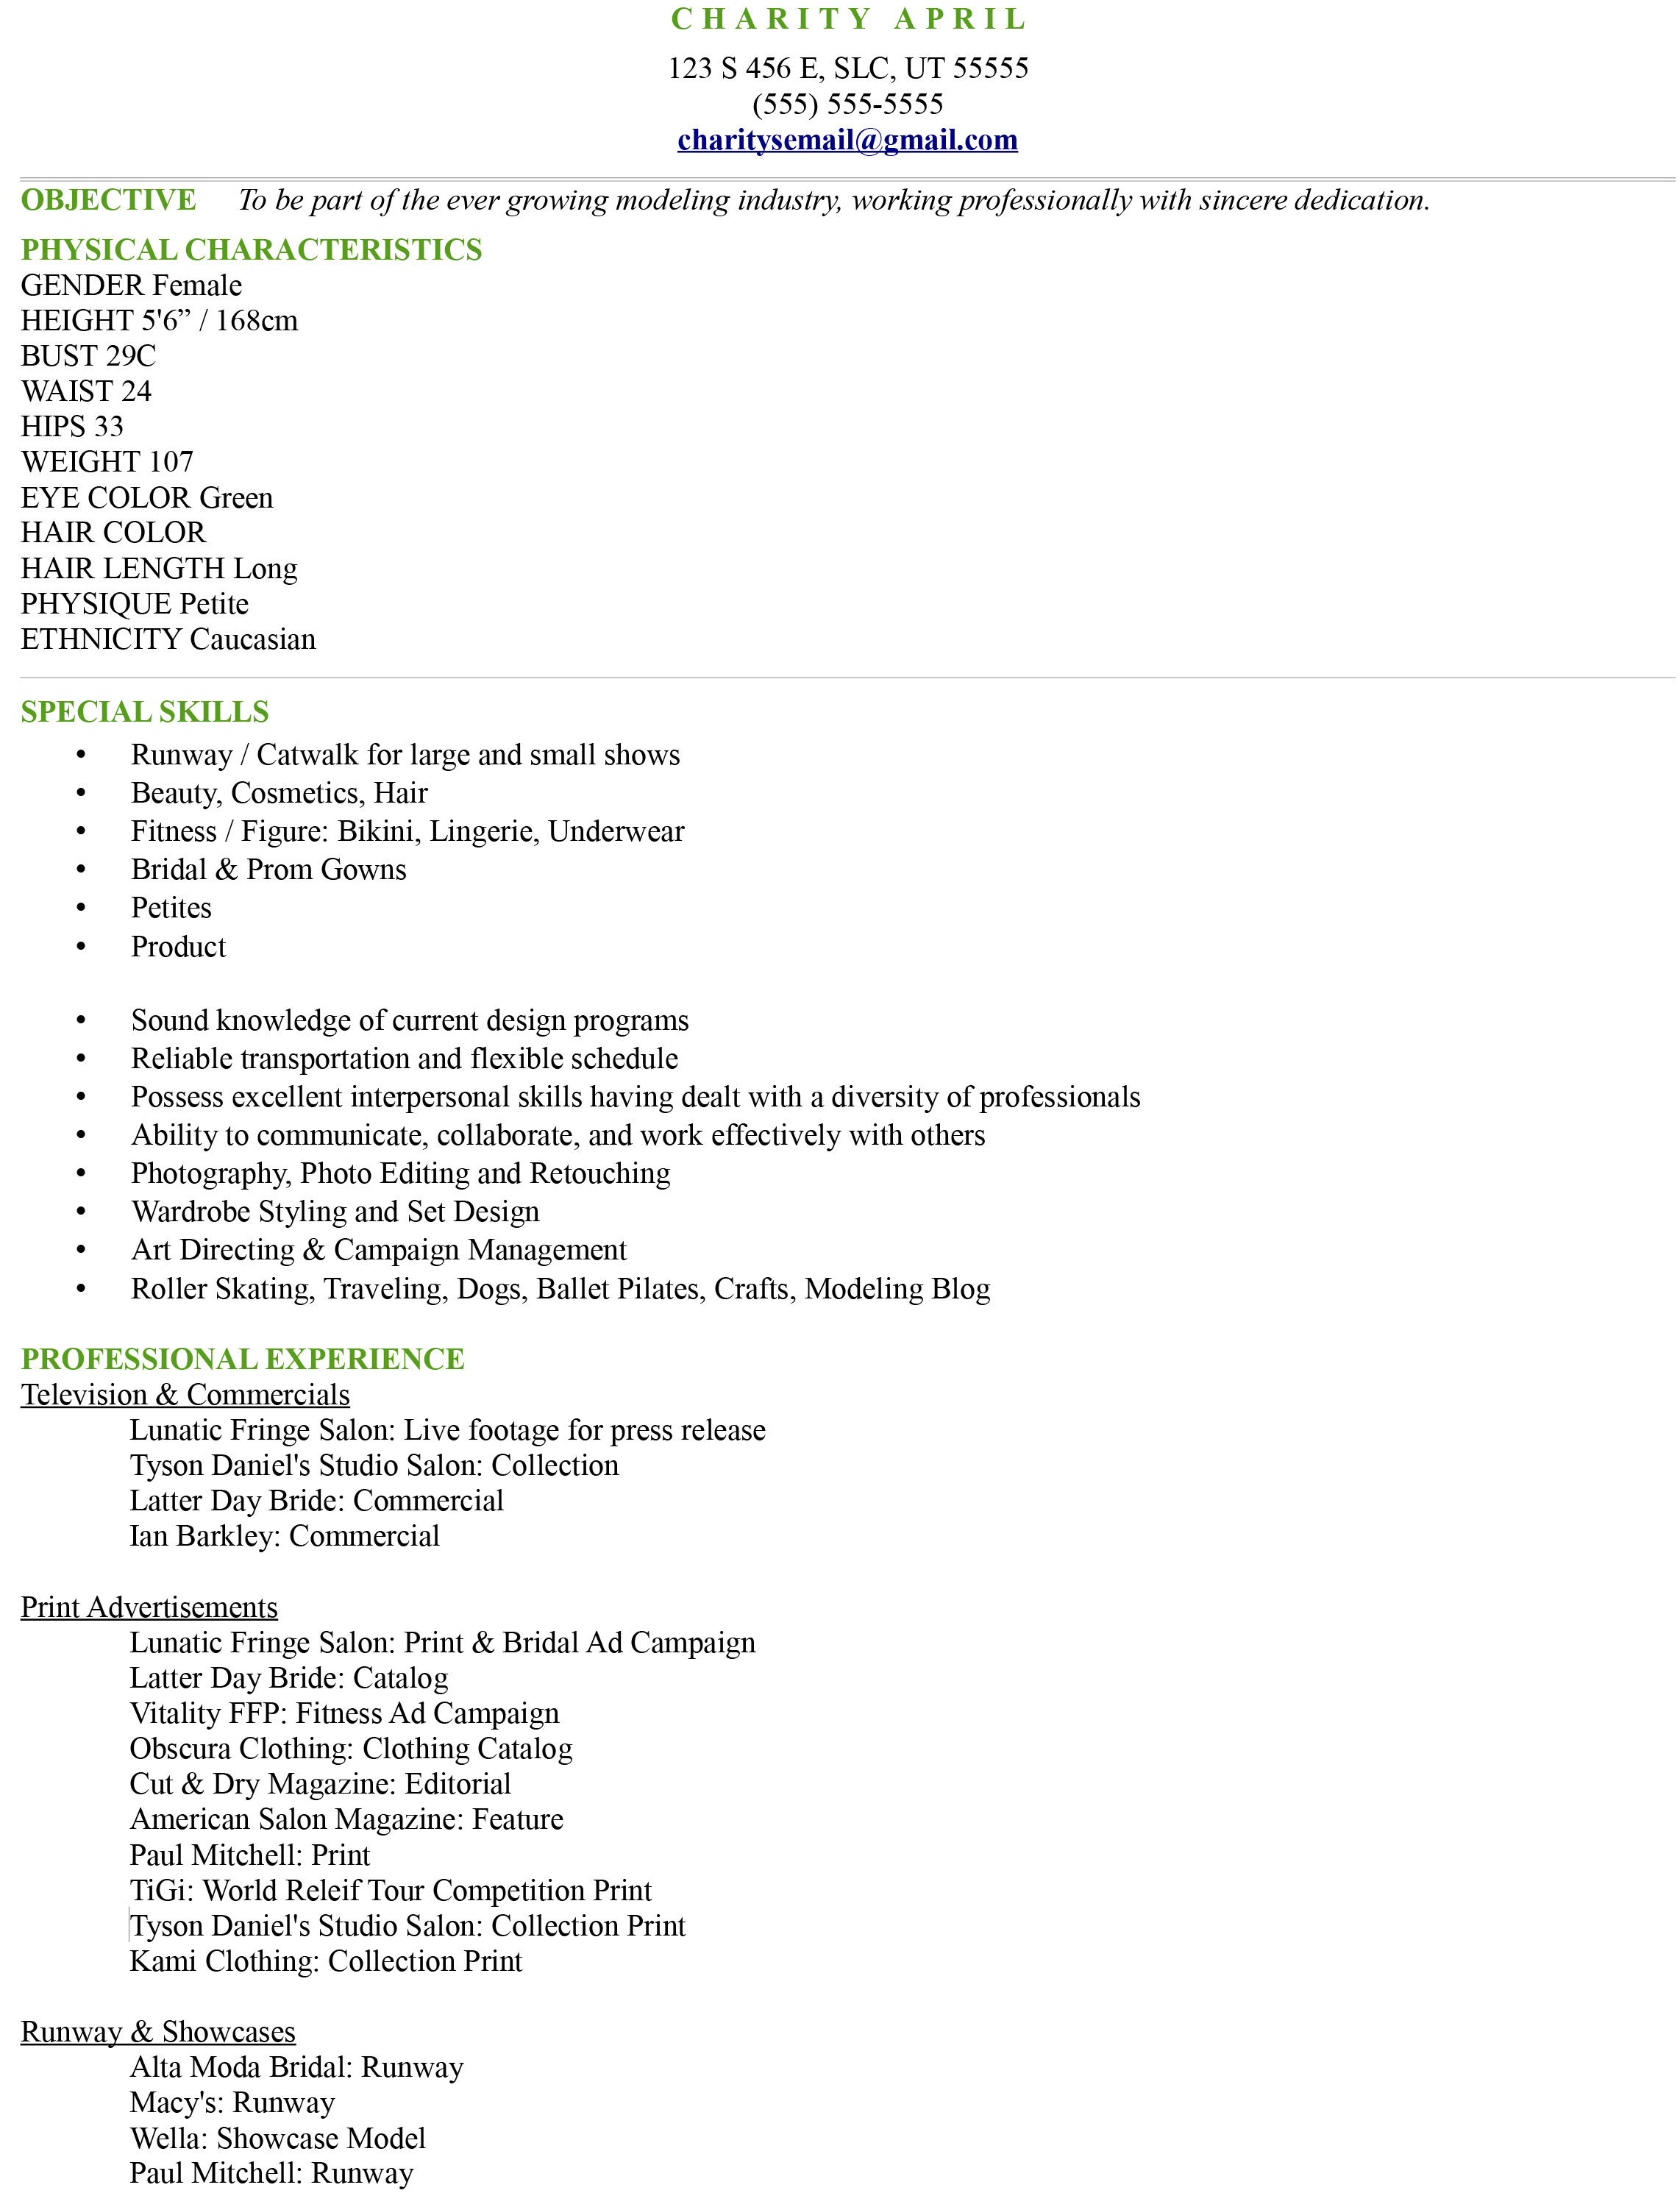 Resume Format For Makeup Artist Uncategorized Fire Your Agent